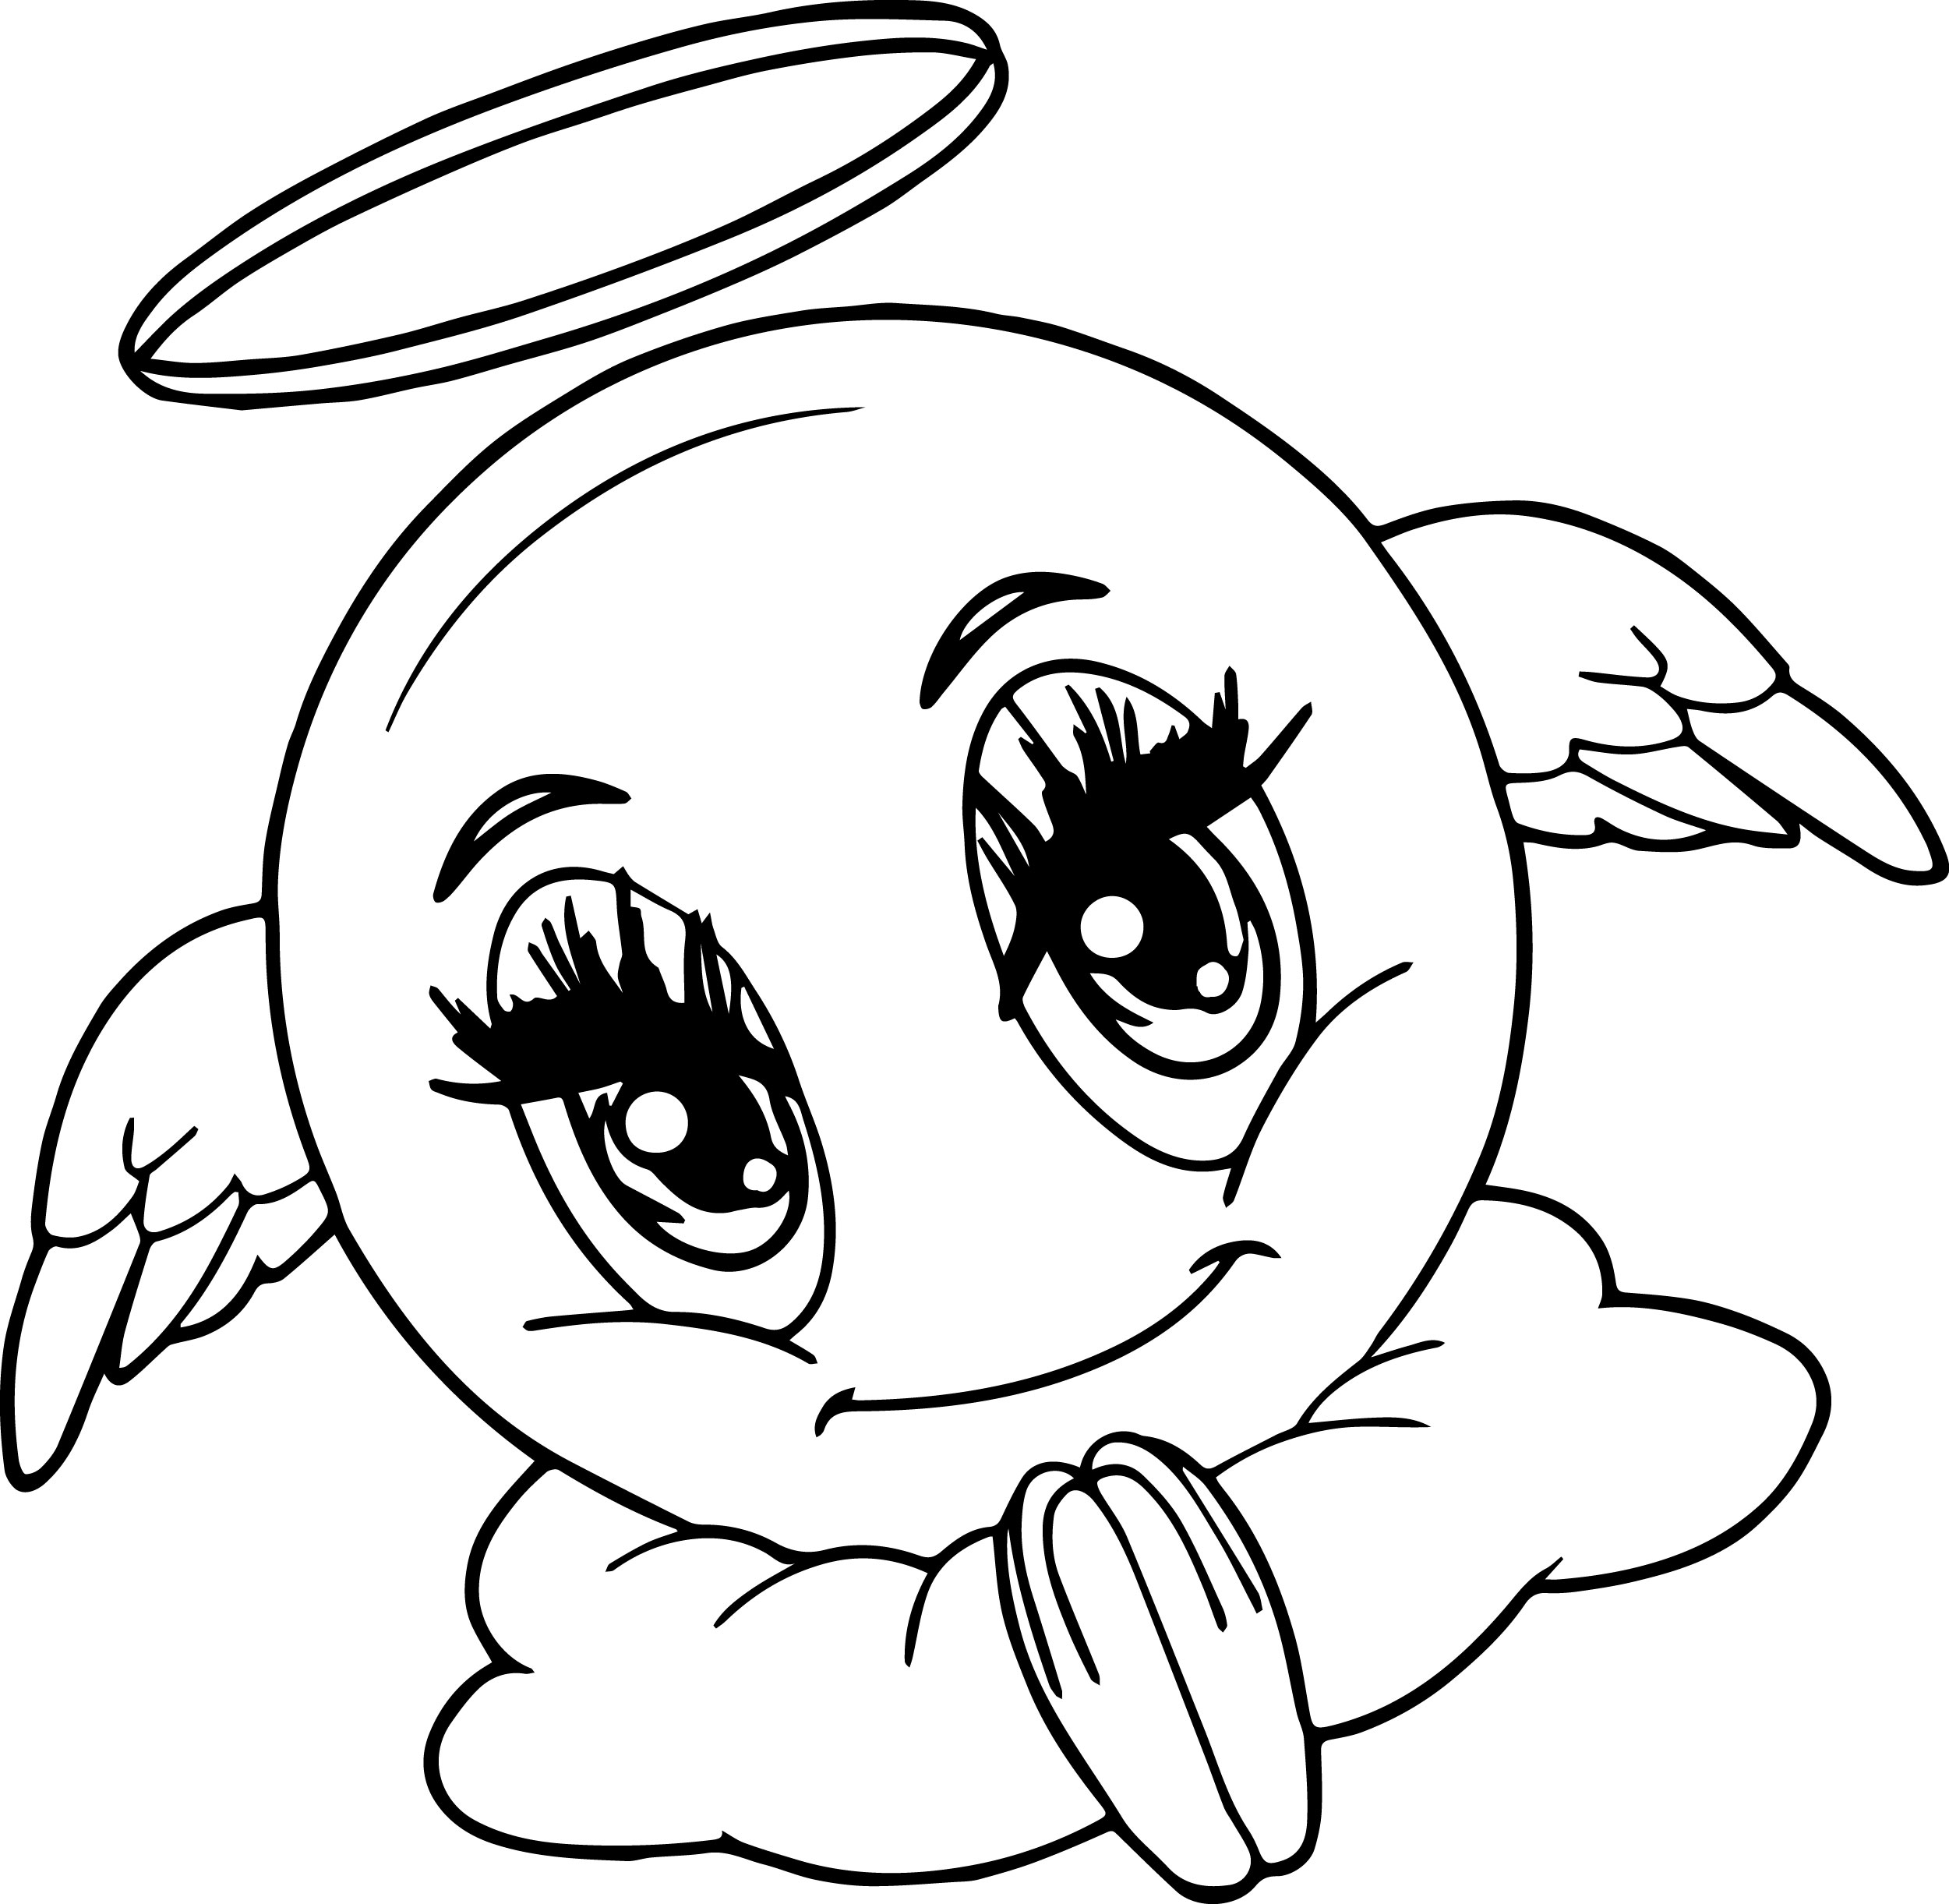 2501x2443 Angel Emoticon Face Coloring Page Wecoloringpage